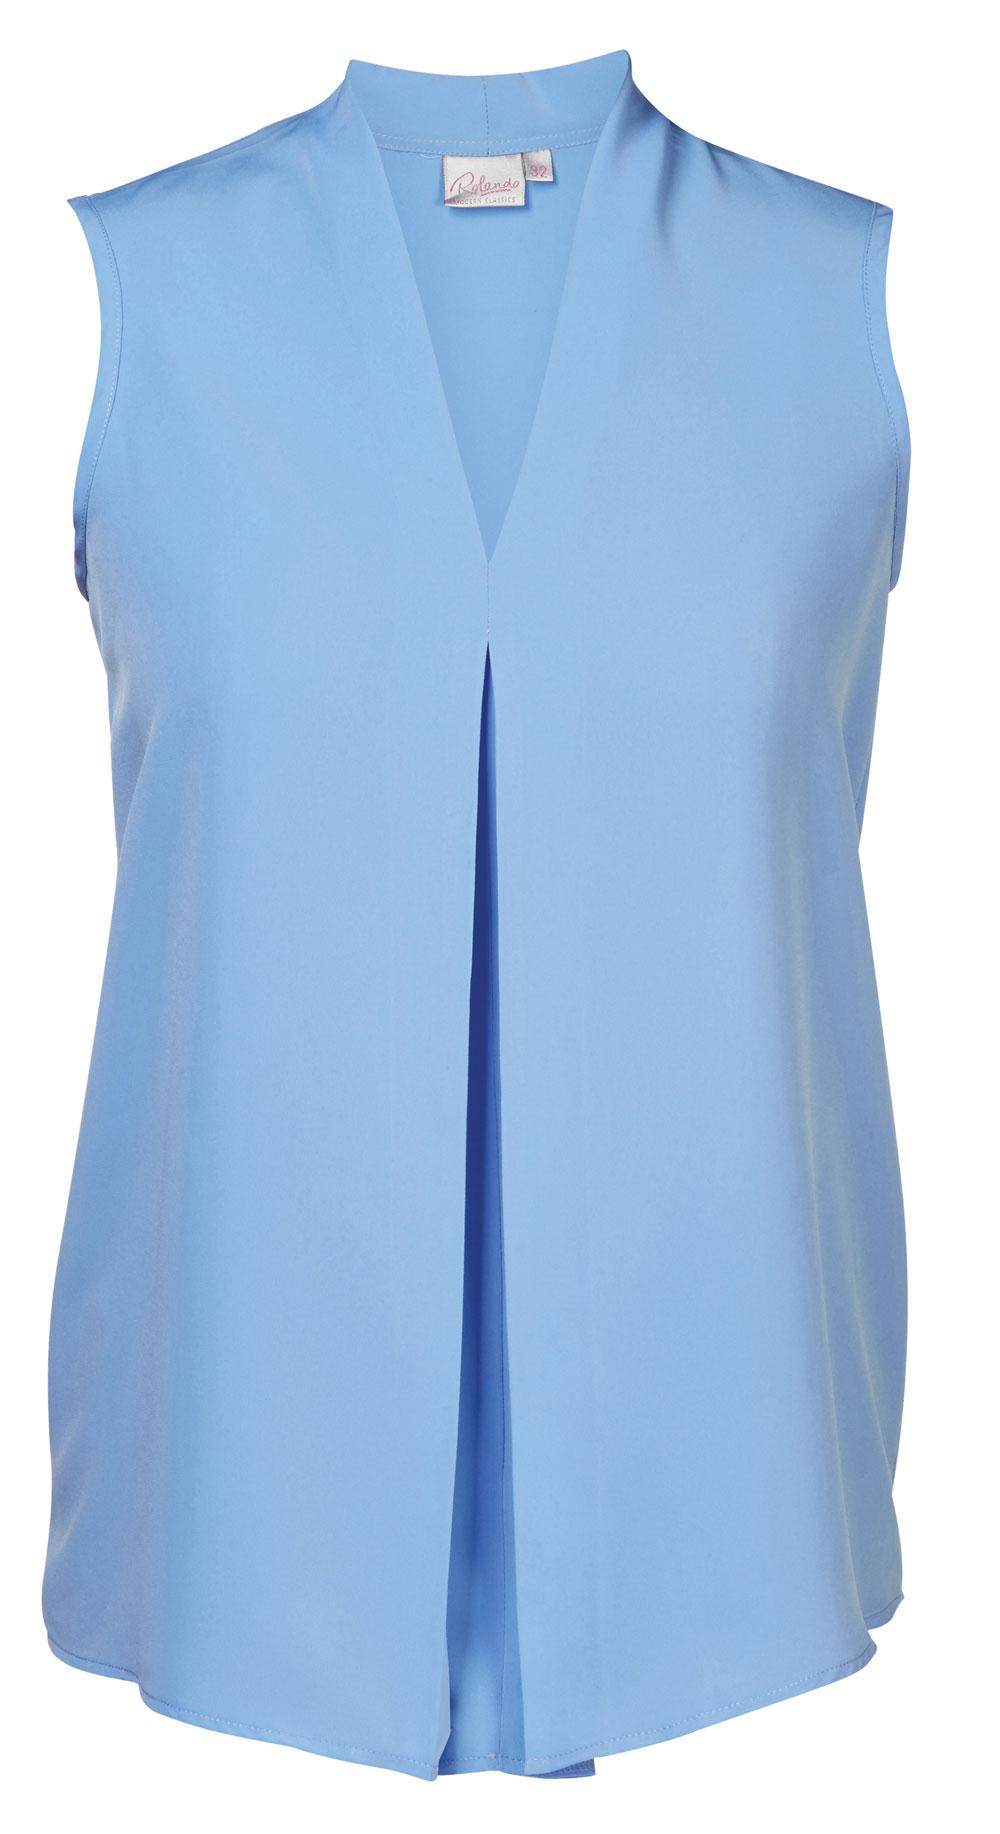 Lyra K225 S/less Blouse - Blue